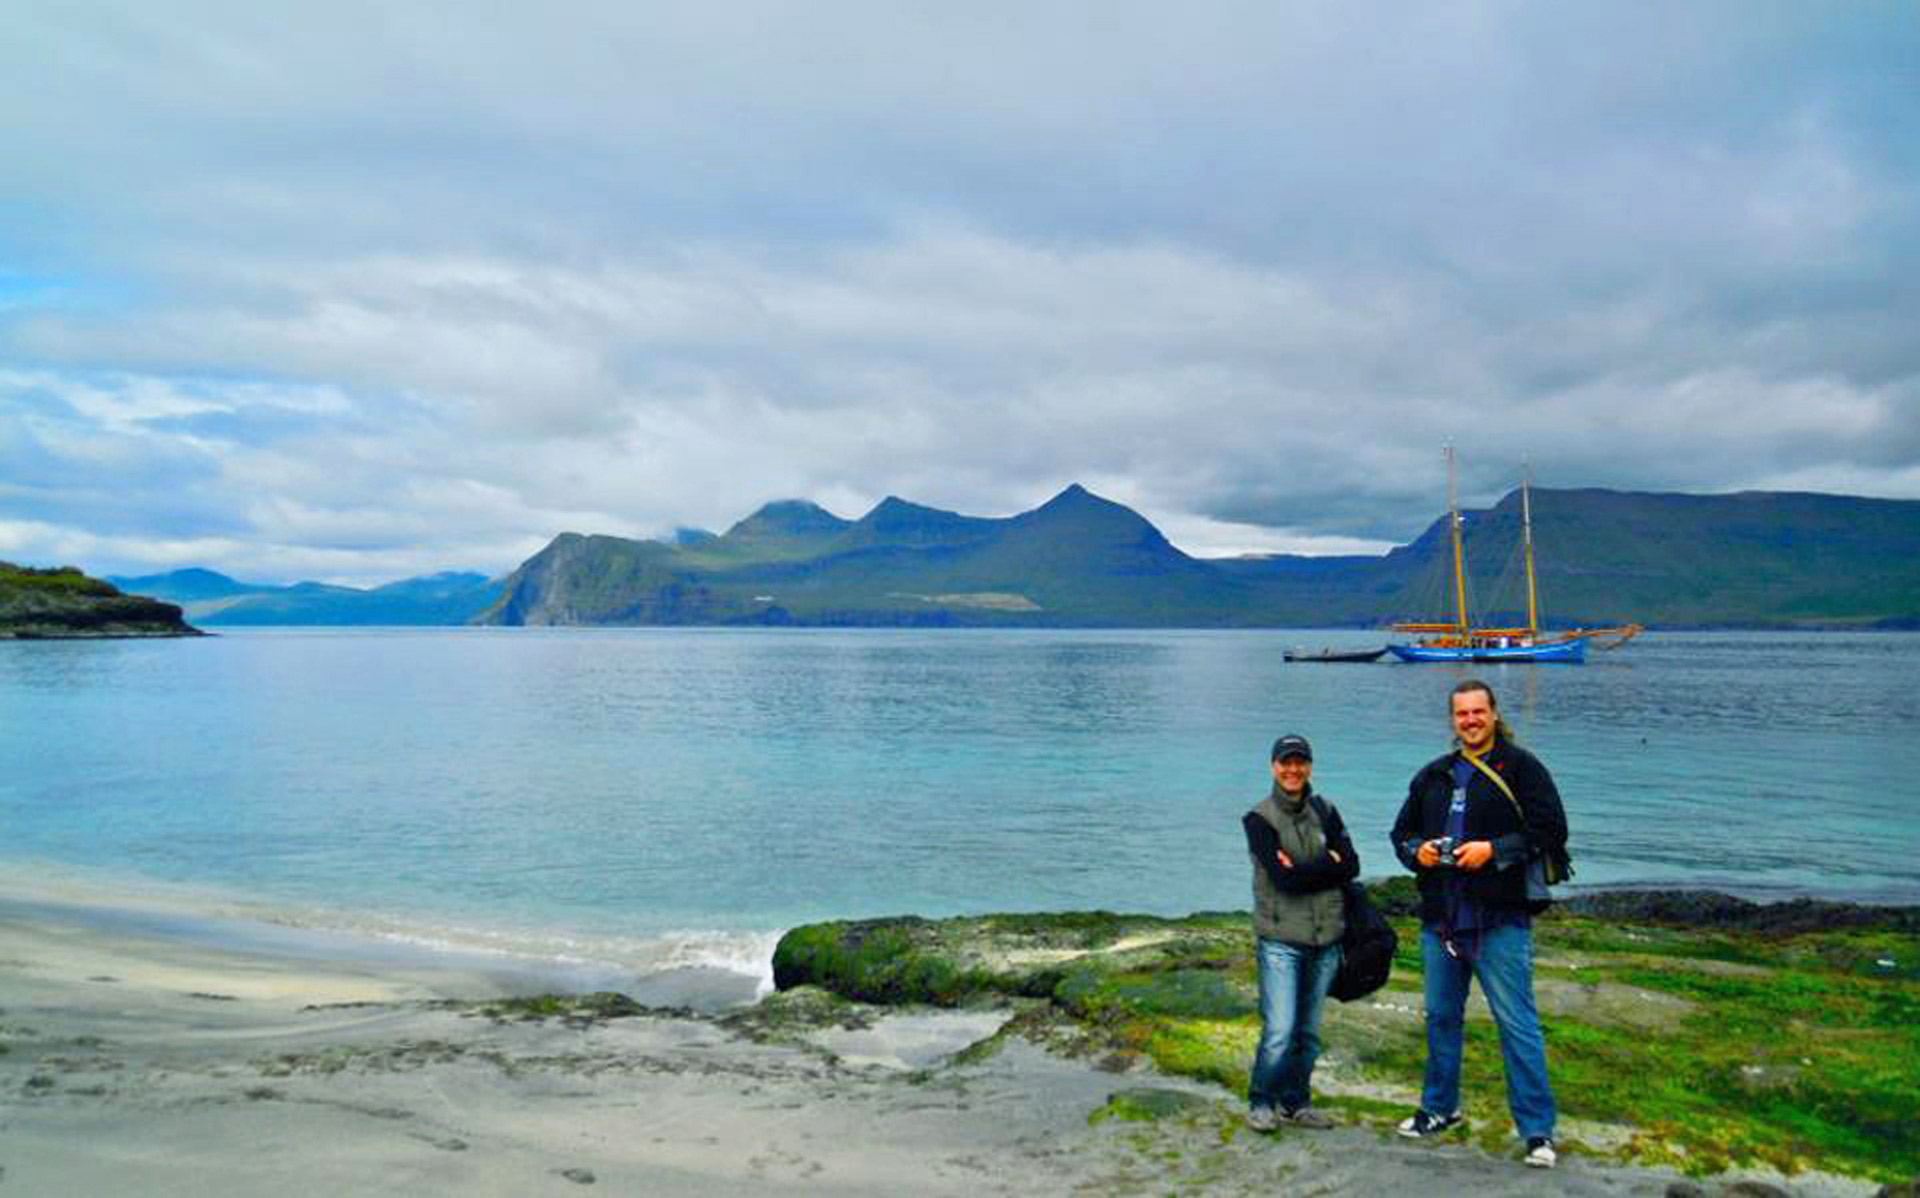 Sasha Abdolmajid and Faroese environmentalist, Rúni Nielsen, in the stunning surroundings of the Koltur in the Faroe Islands. Photo: HP Roth